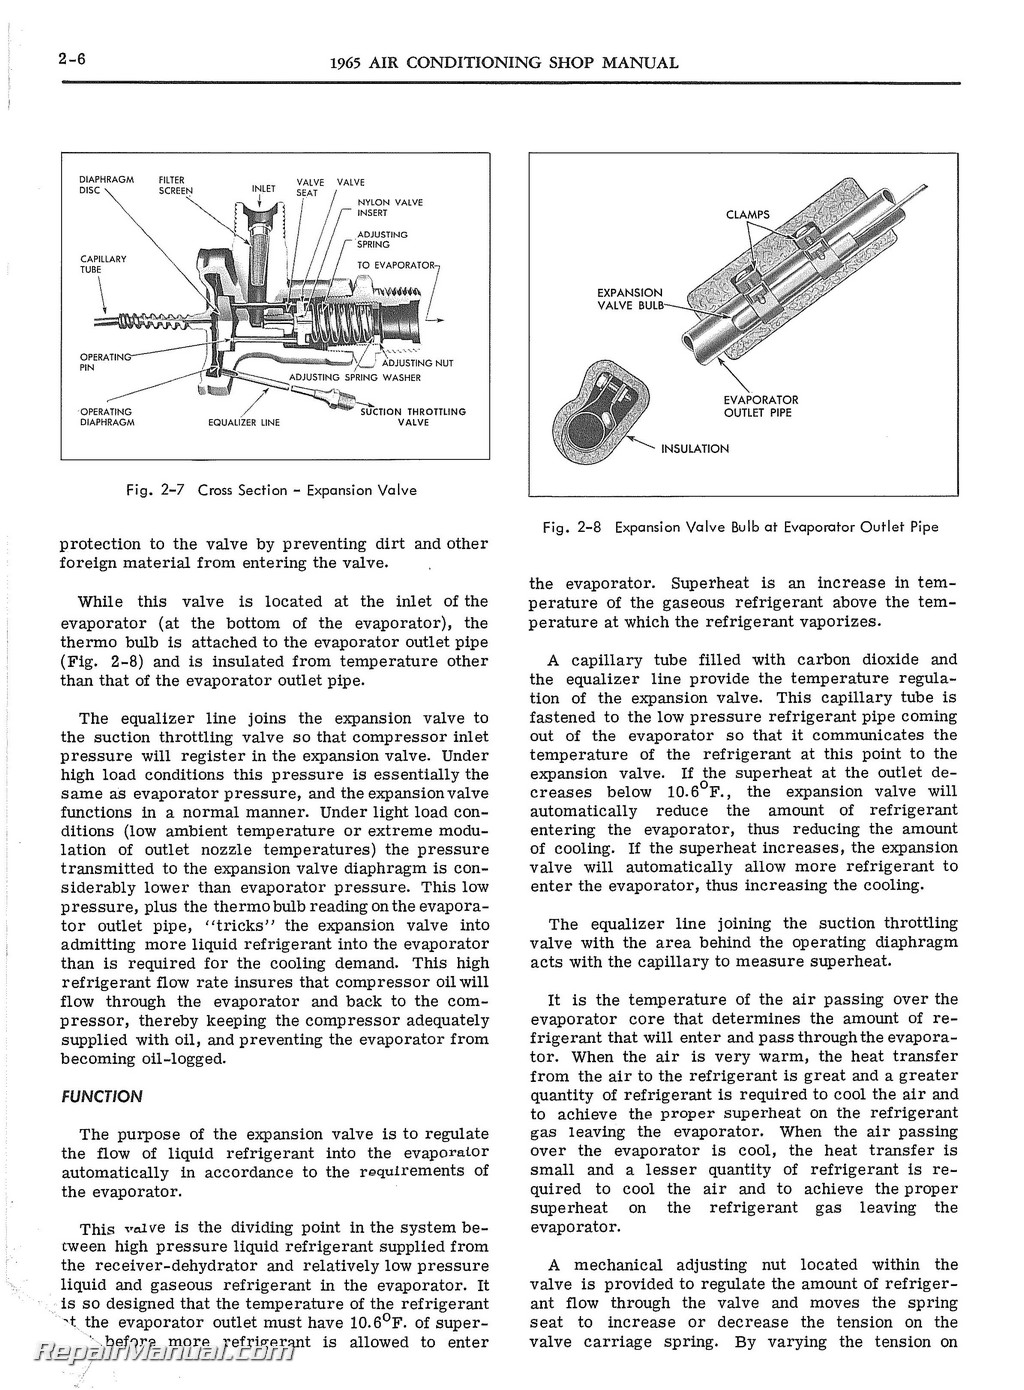 1965 pontiac and tempest air conditioning manual